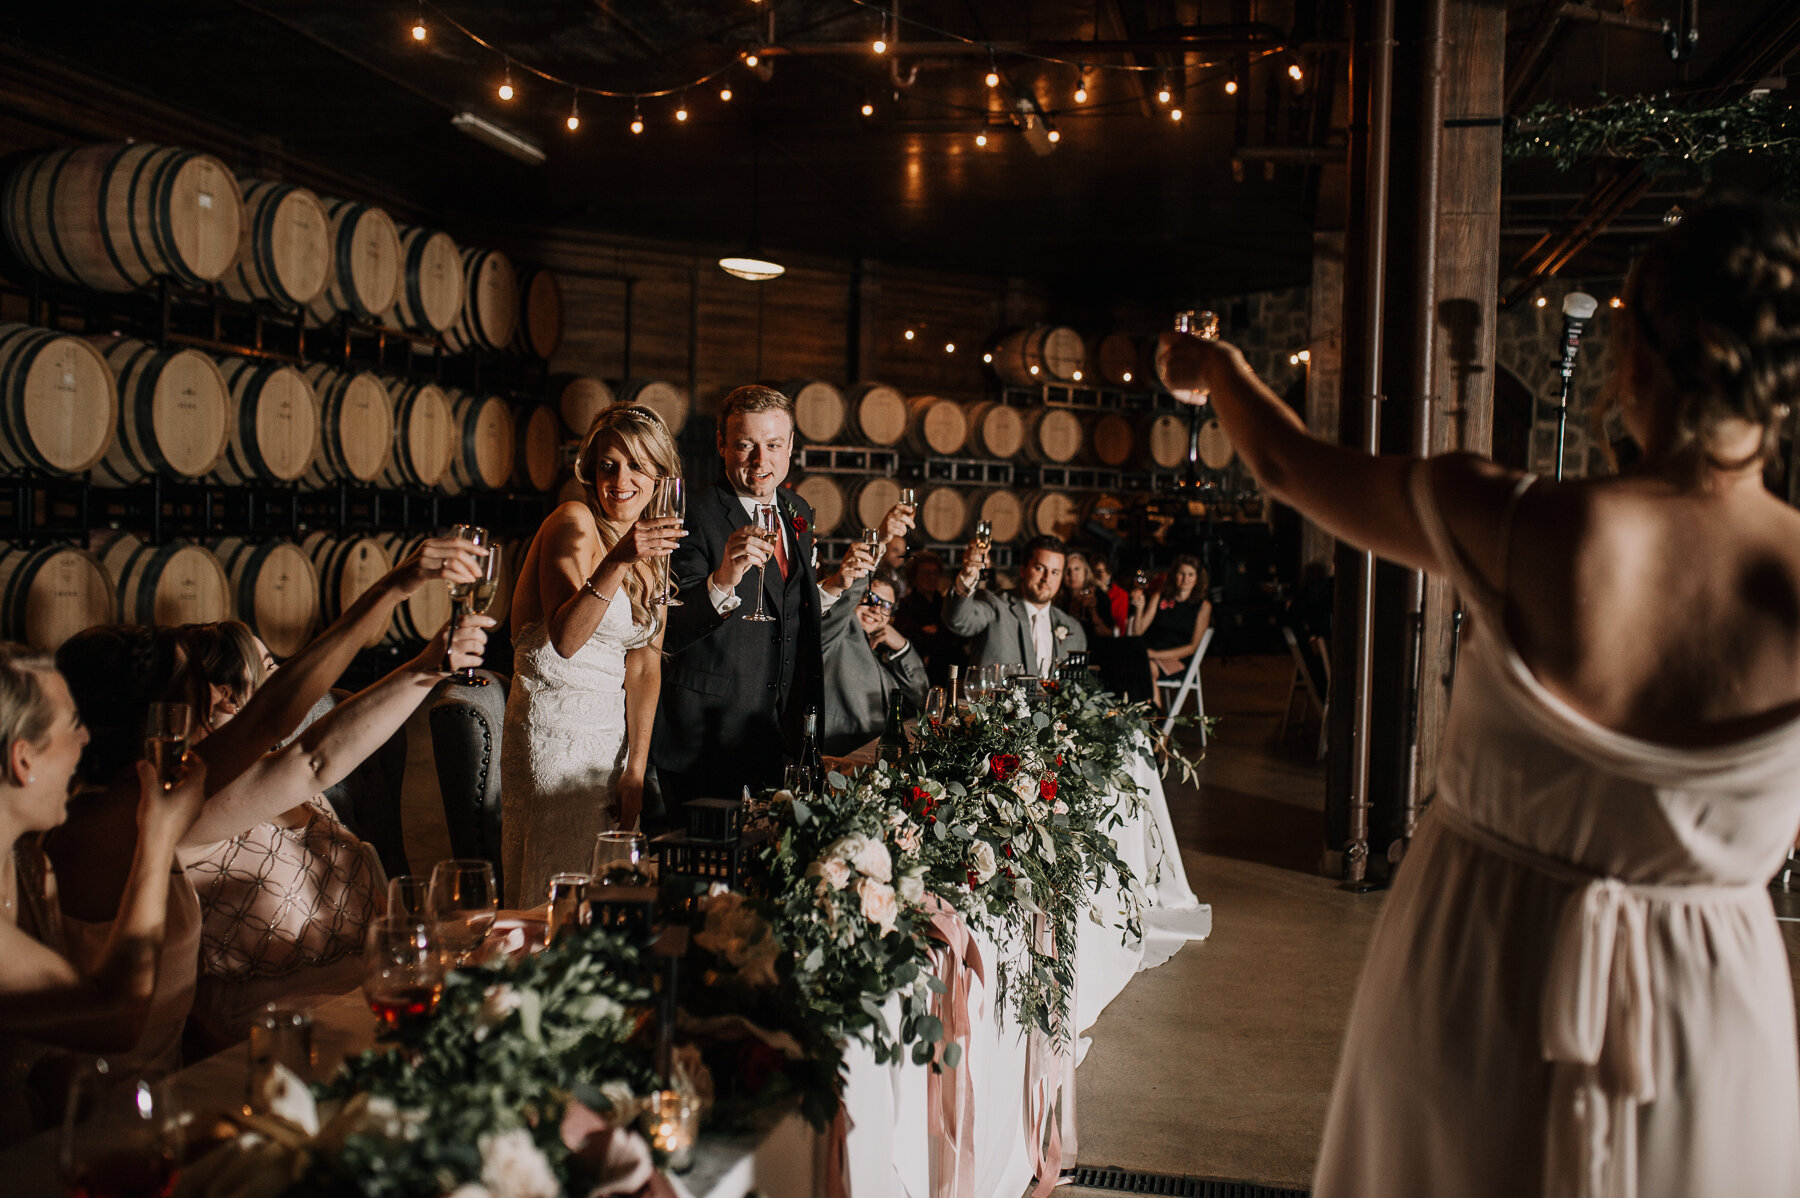 1091Swiftwater Cellars Wedding_Cle Elum Wedding_Montana Wedding Photographer_Kat & Kyle_September 15, 2018-382.jpg